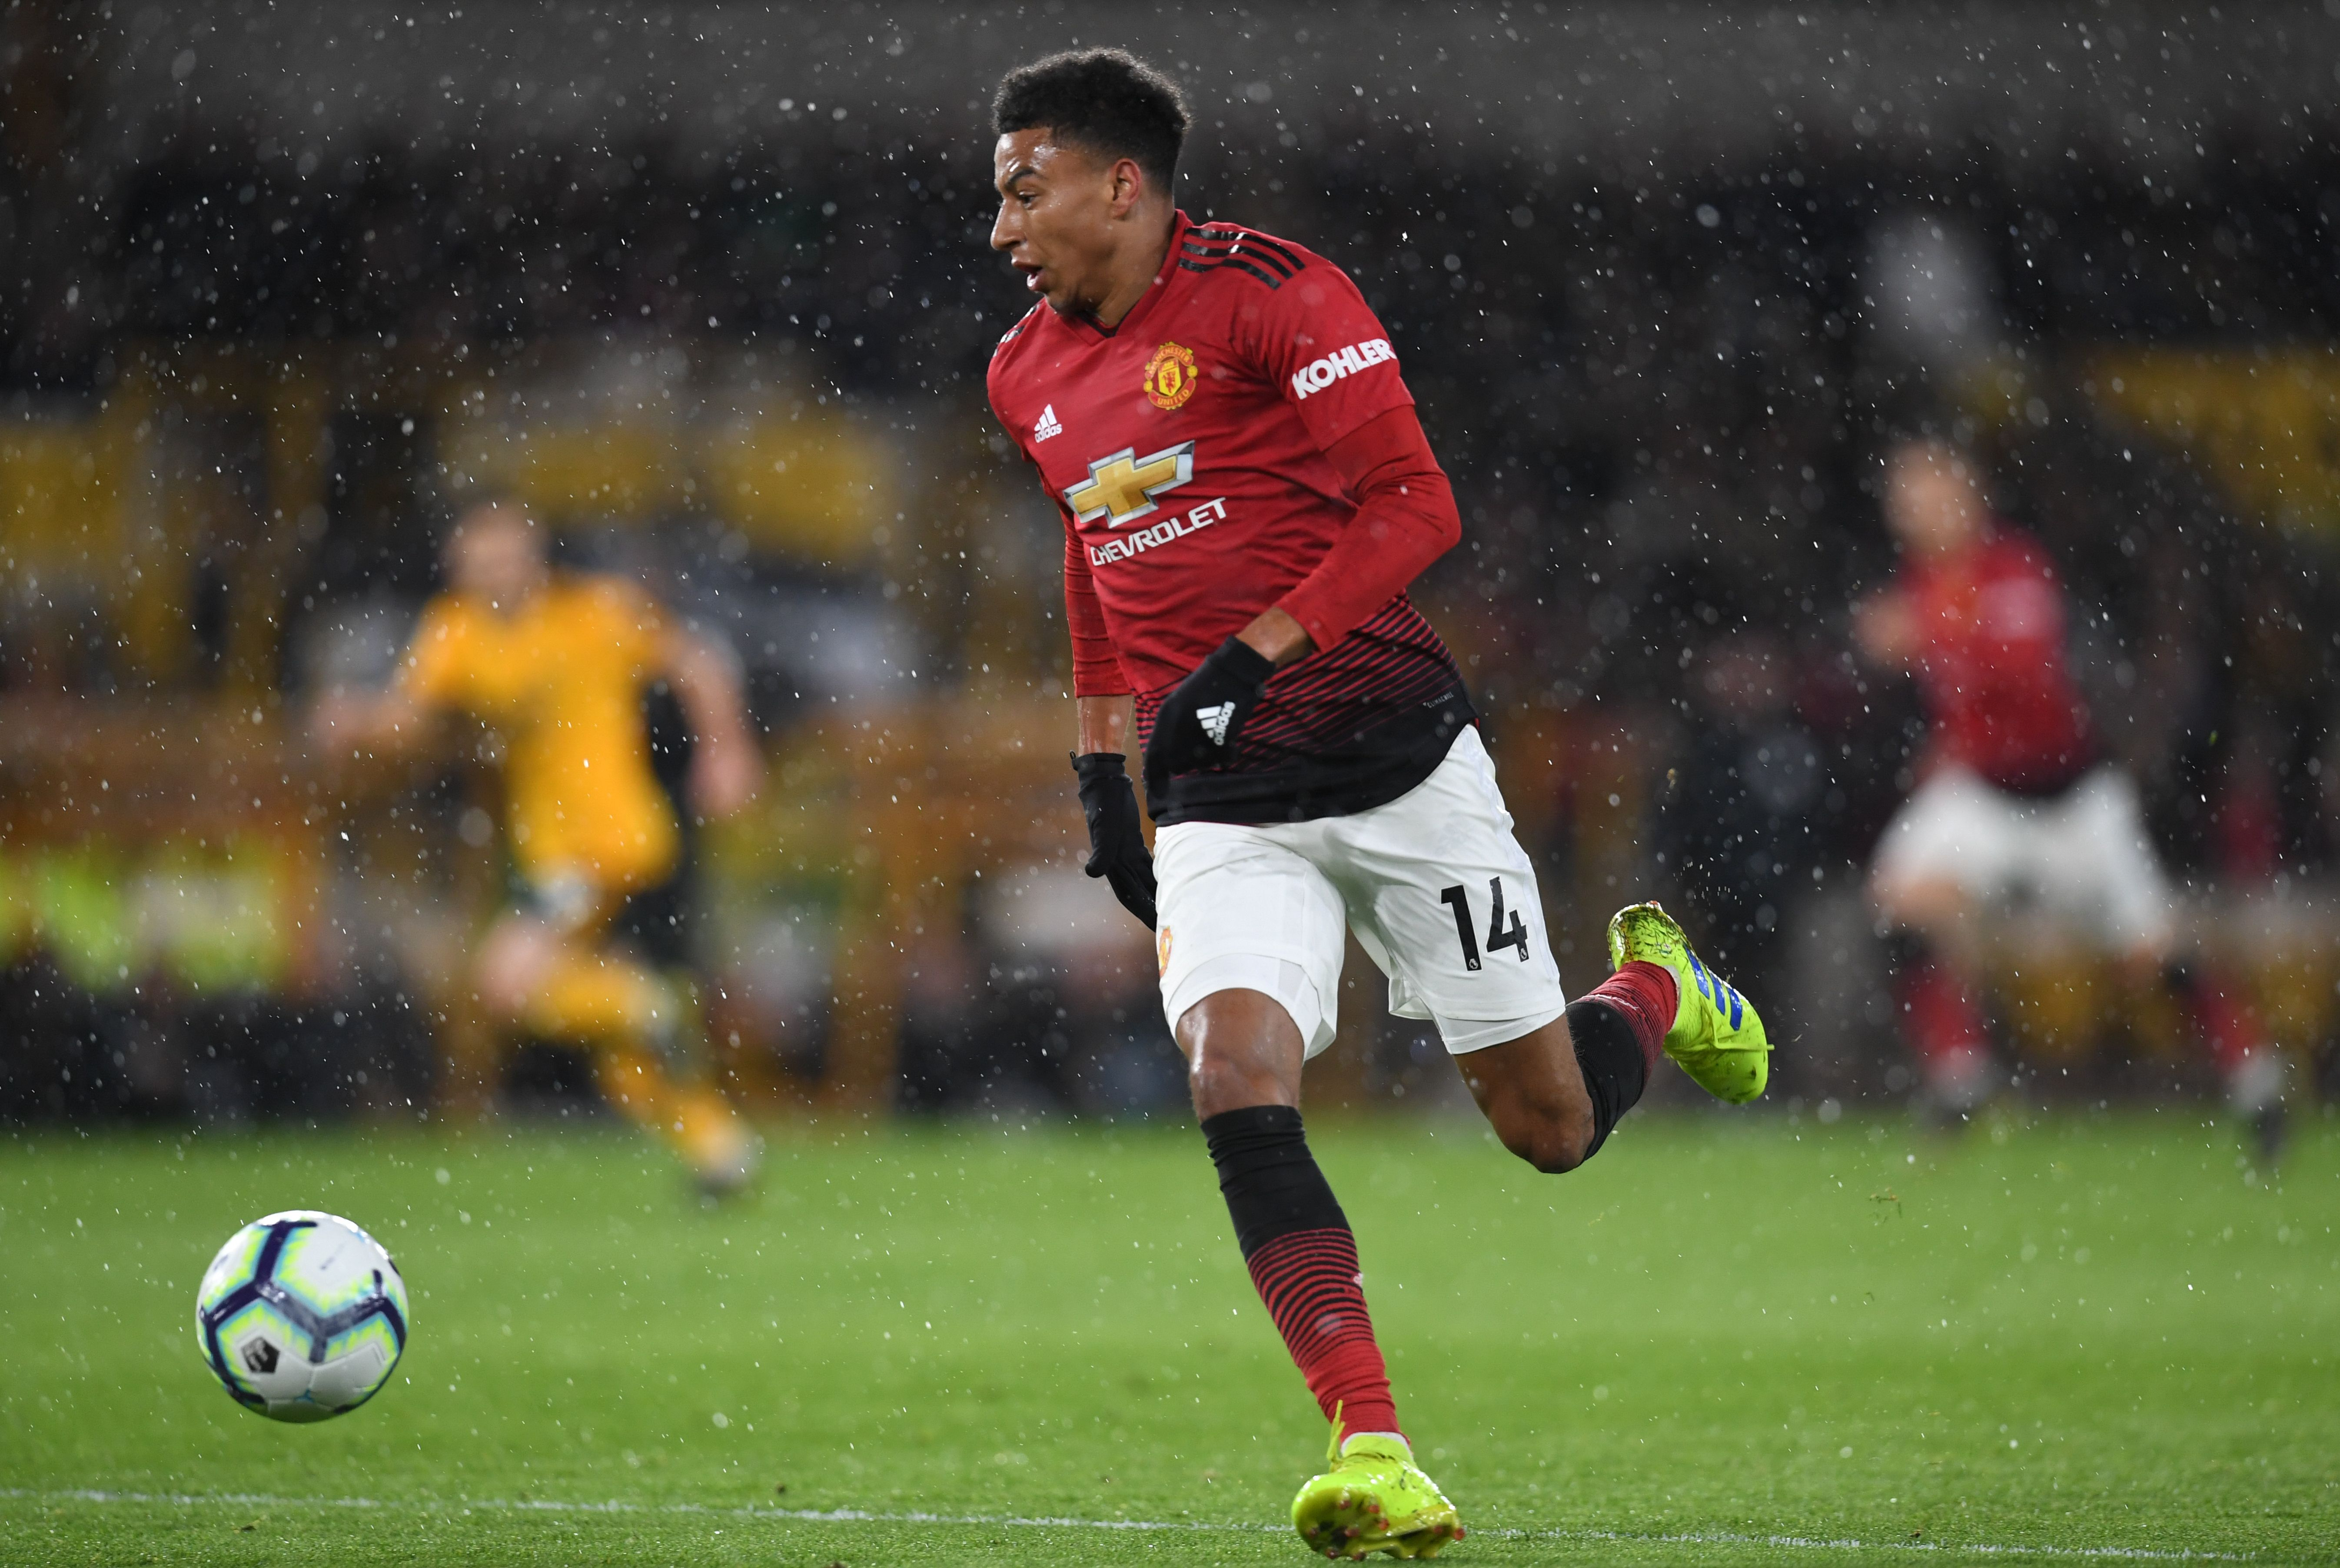 West Ham United remain keen on Manchester United star Jesse Lingard and hope that an agreement can be reached this winter